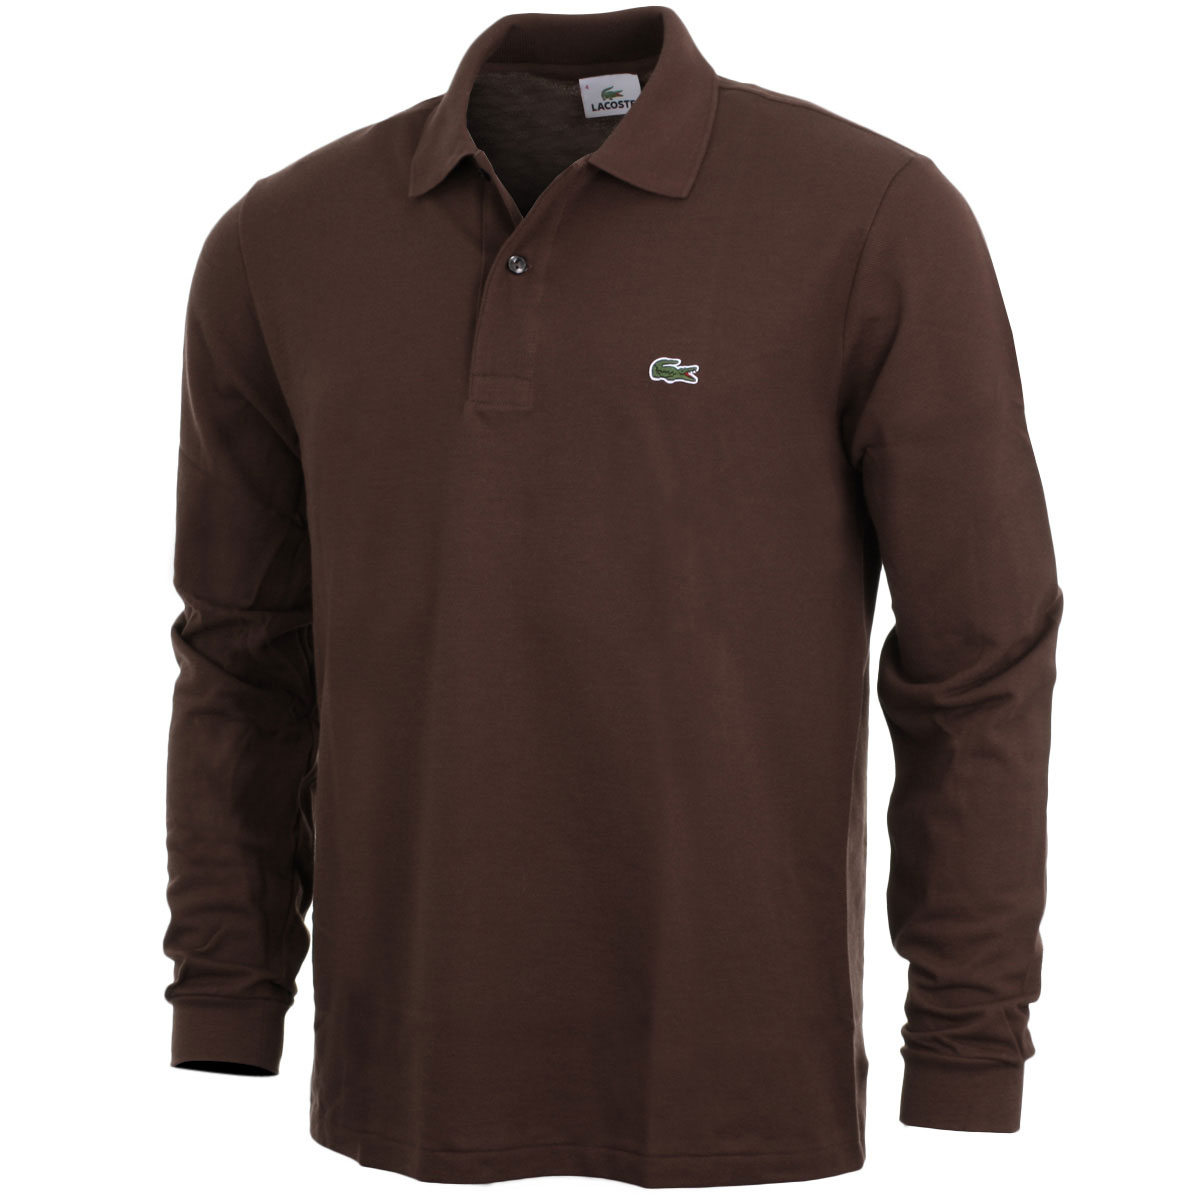 Lacoste 2017 mens classic cotton long sleeve l1312 polo for Lacoste polo shirts ebay